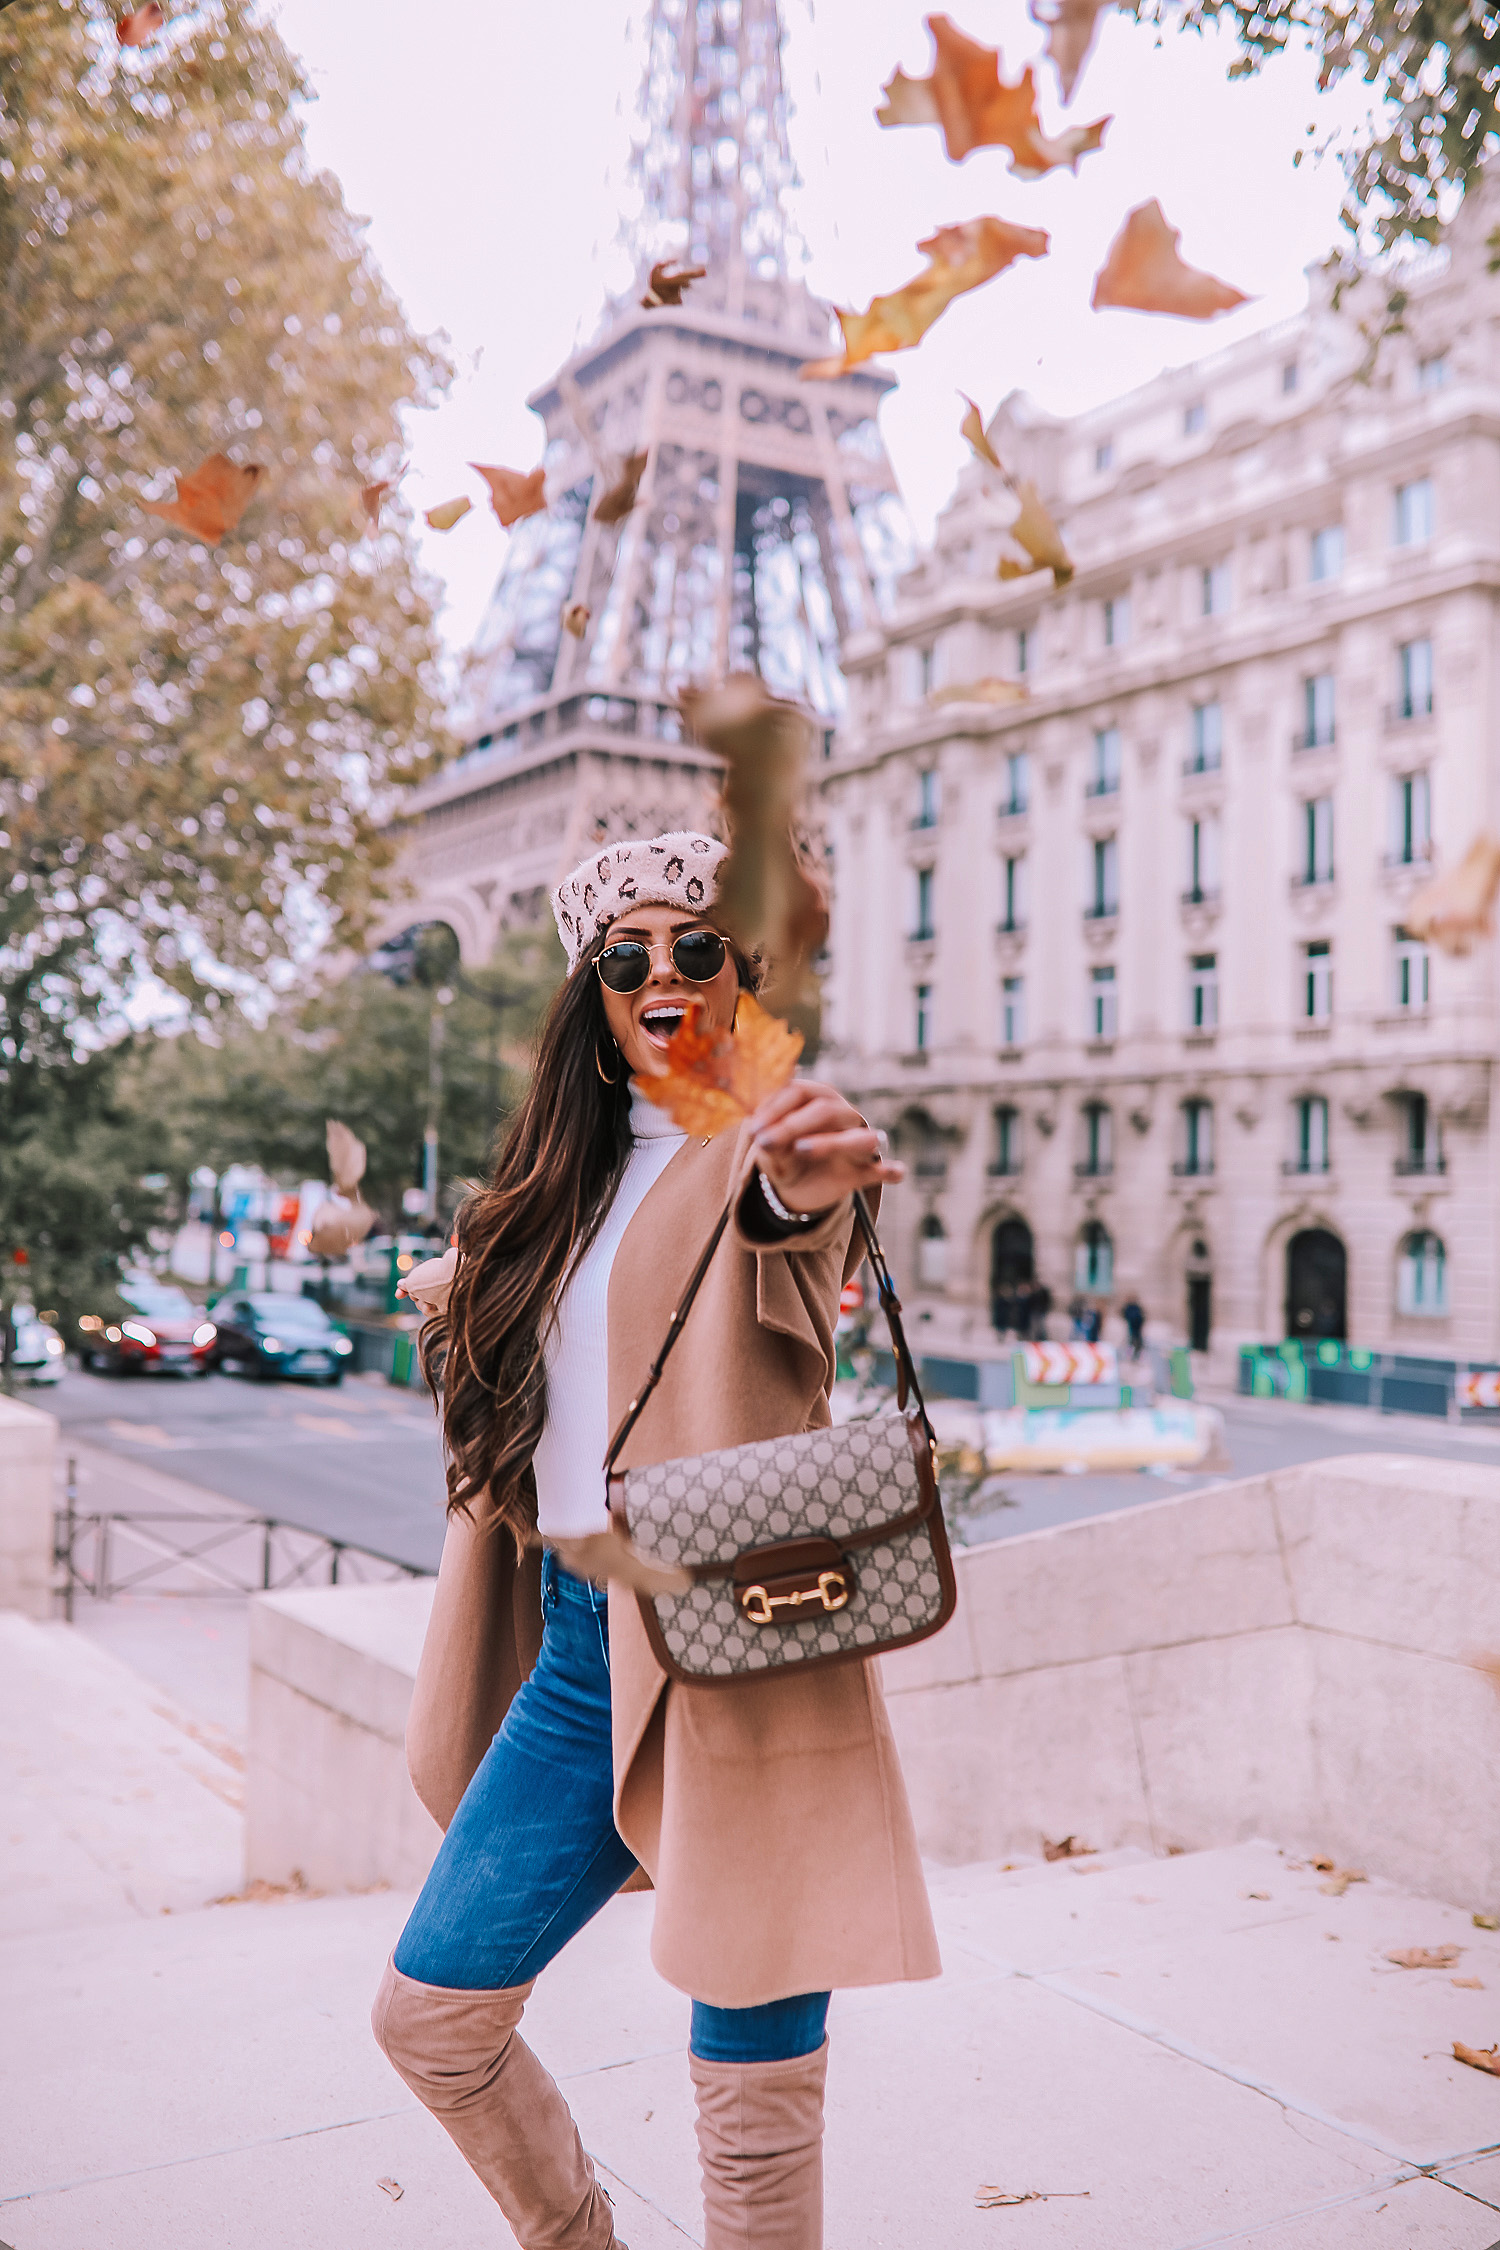 Fall outfit idea paris pinterest 2019| Over the knee boot outfit featured by top US fashion blog, The Sweetest Thing: image of a woman wearing  Gucci Horsebit 1955 Gucci Bag, leopard beret, taupe over the knee boots steve madden, emily gemma, Fall Fashion outfit ideas tan coat over the knee boots